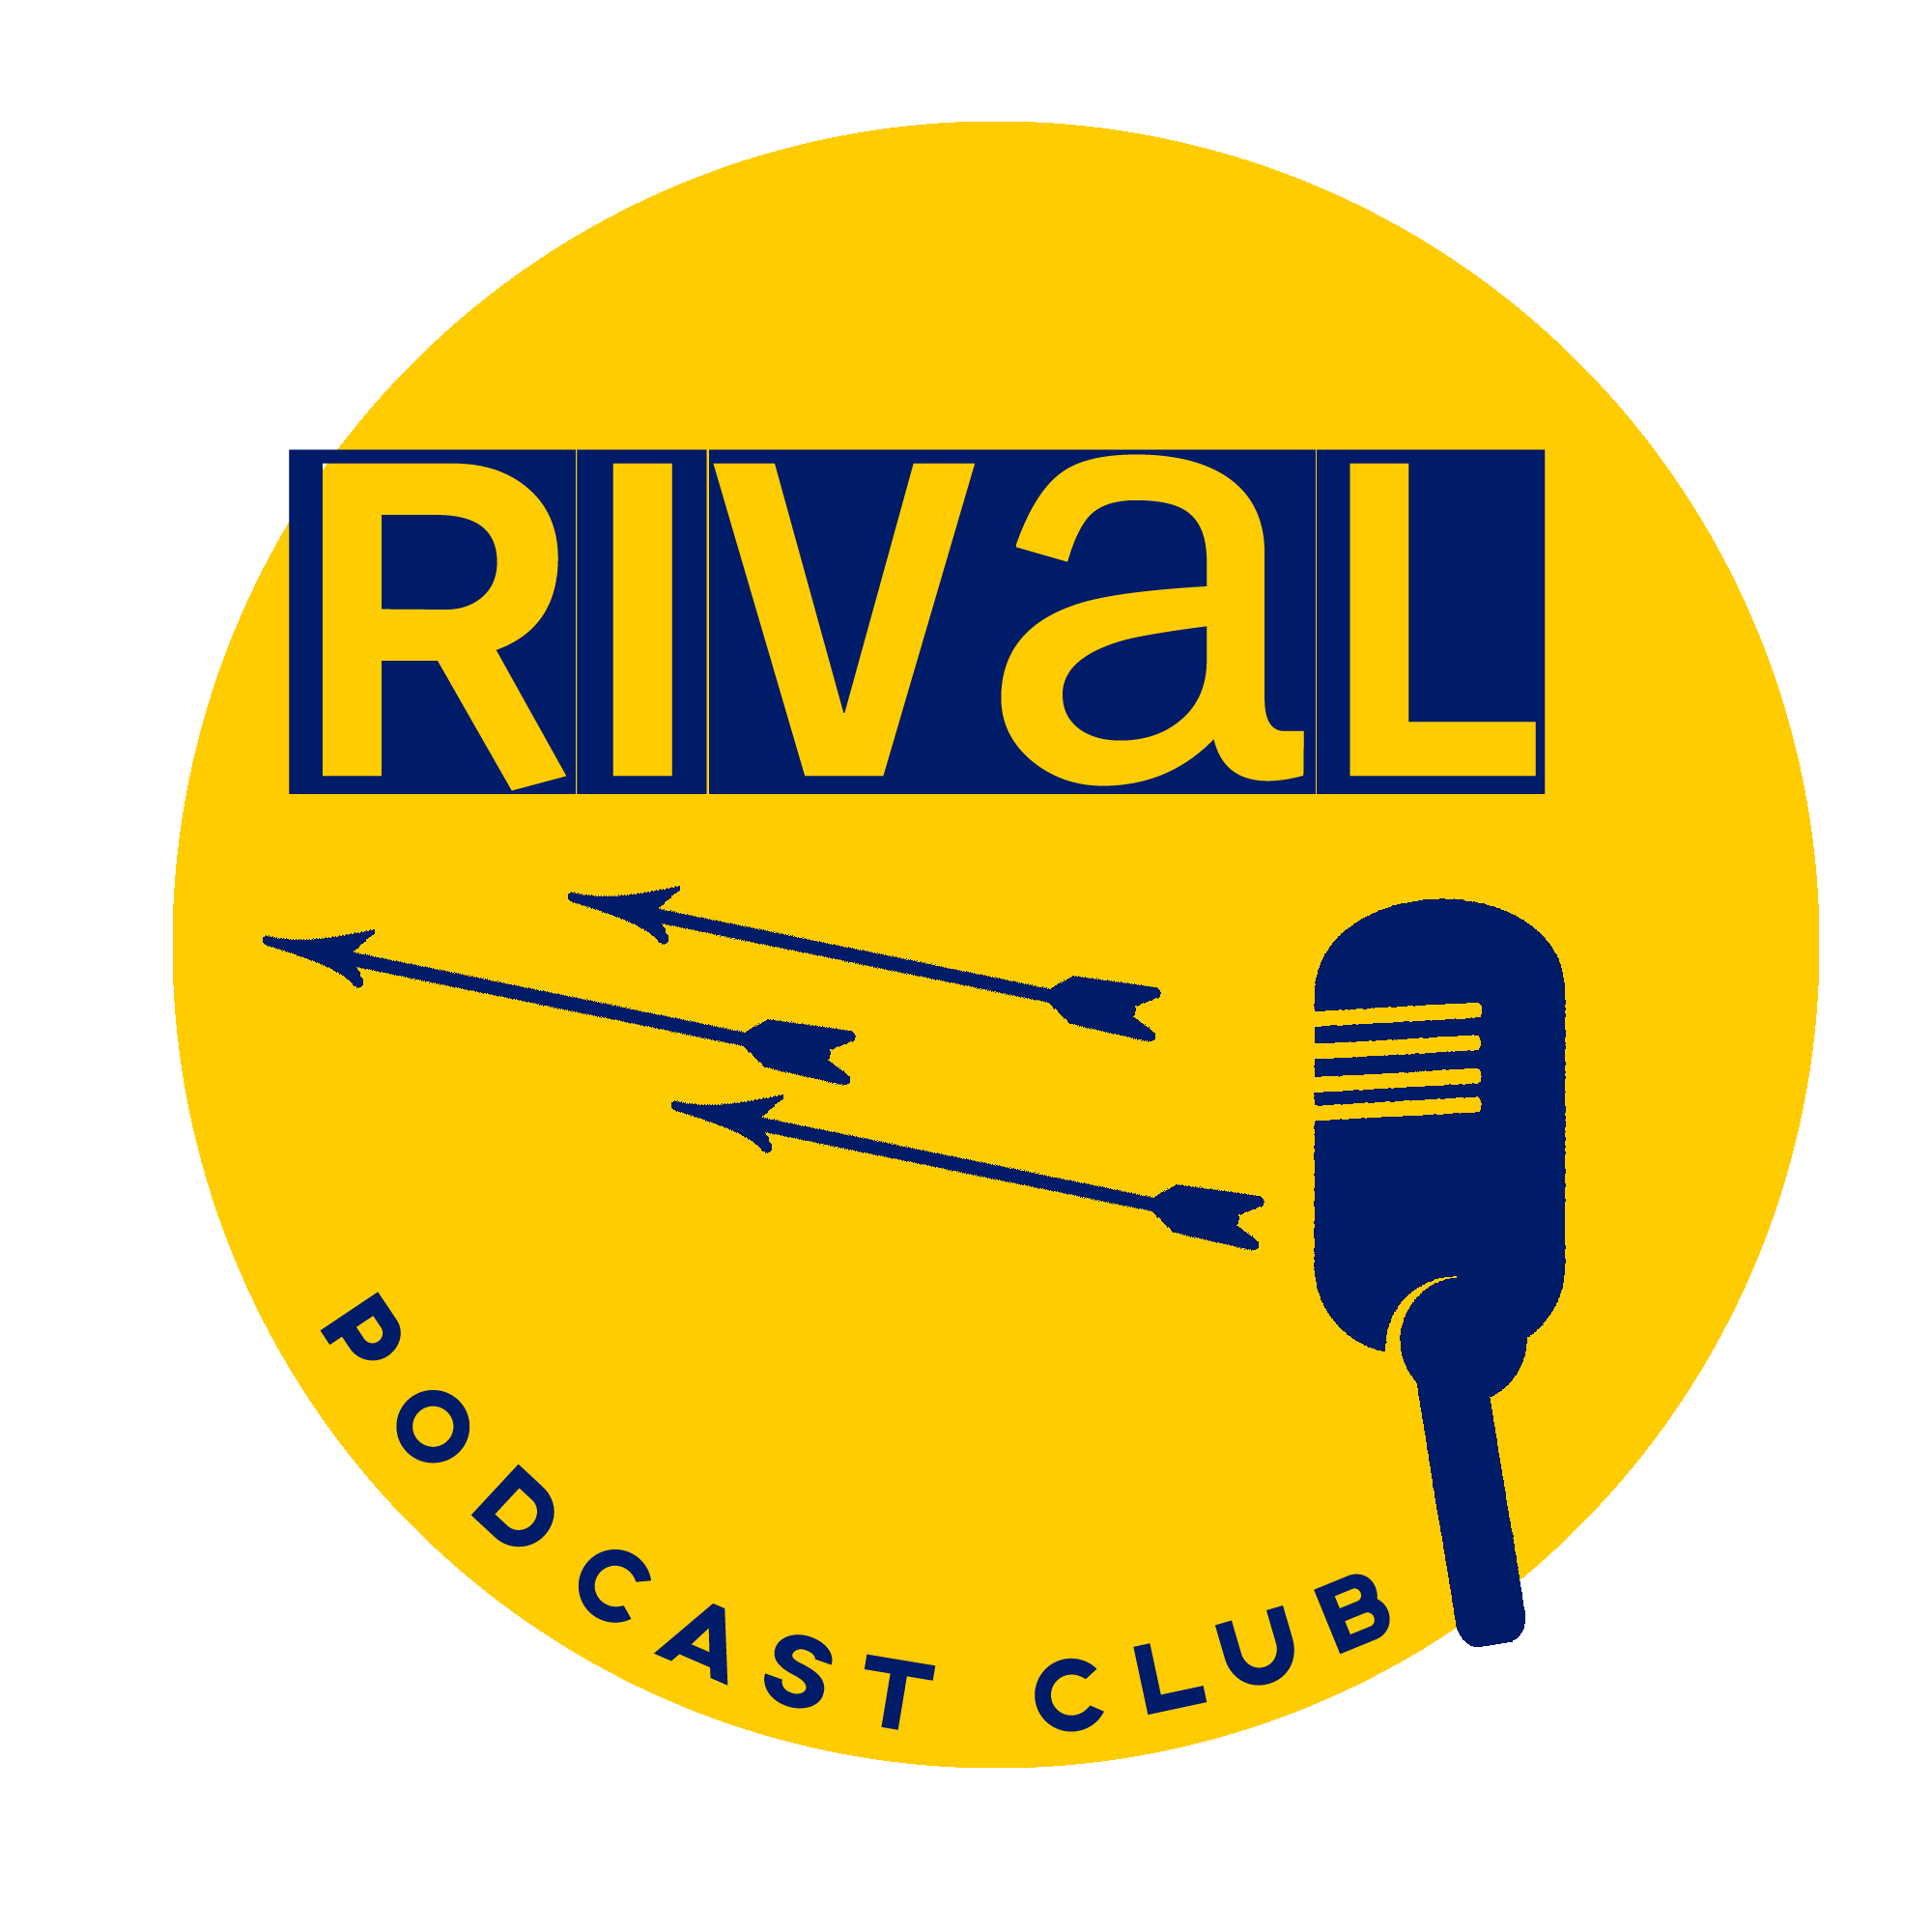 Rival Podcast Club